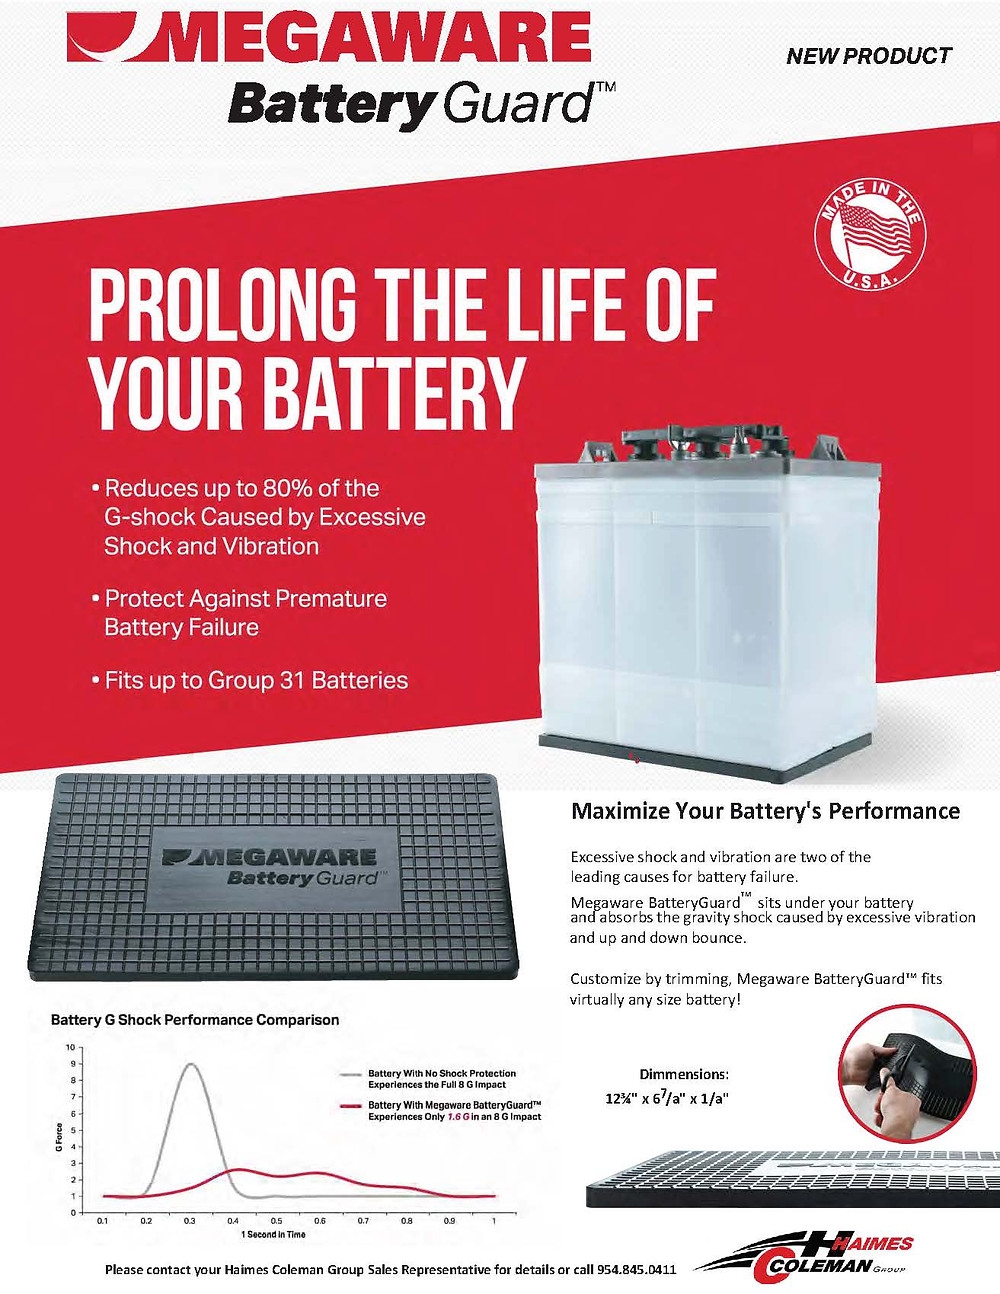 Prolong the life of your battery by reducing up to 80% of the G-shock caused by excessive shock and vibrations